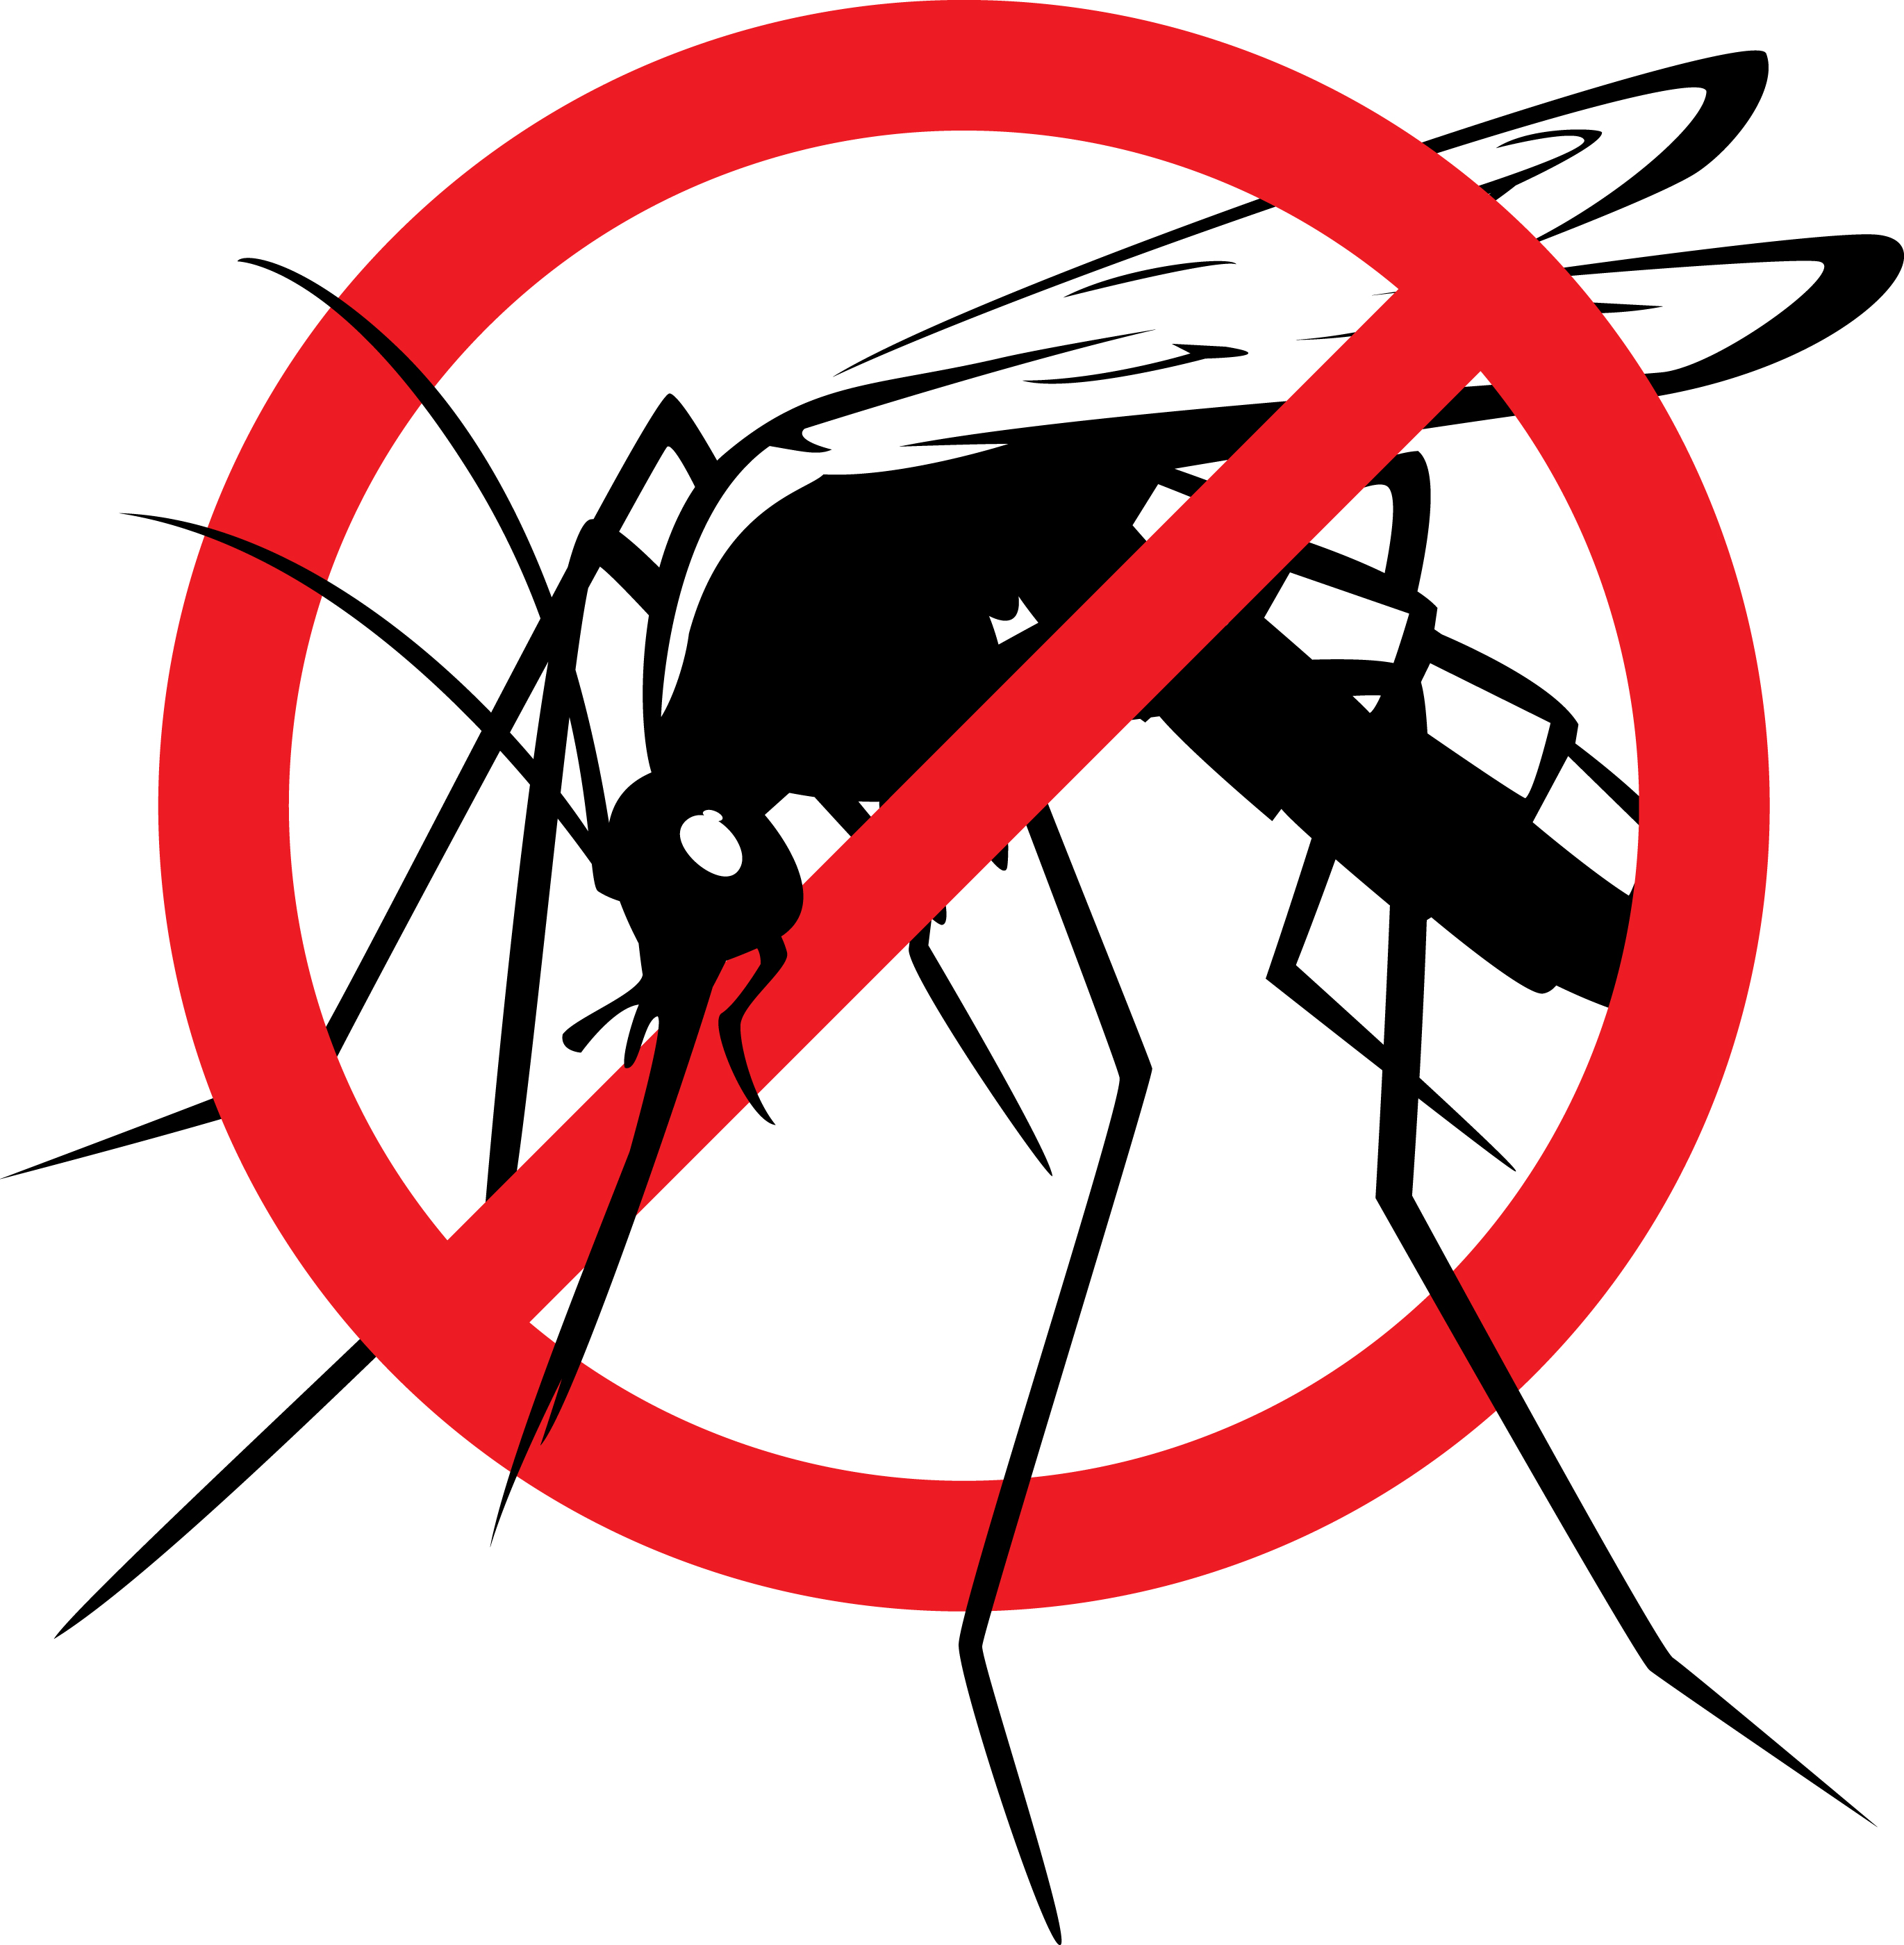 Mosquito clipart zika The Tips Scared Control Zika